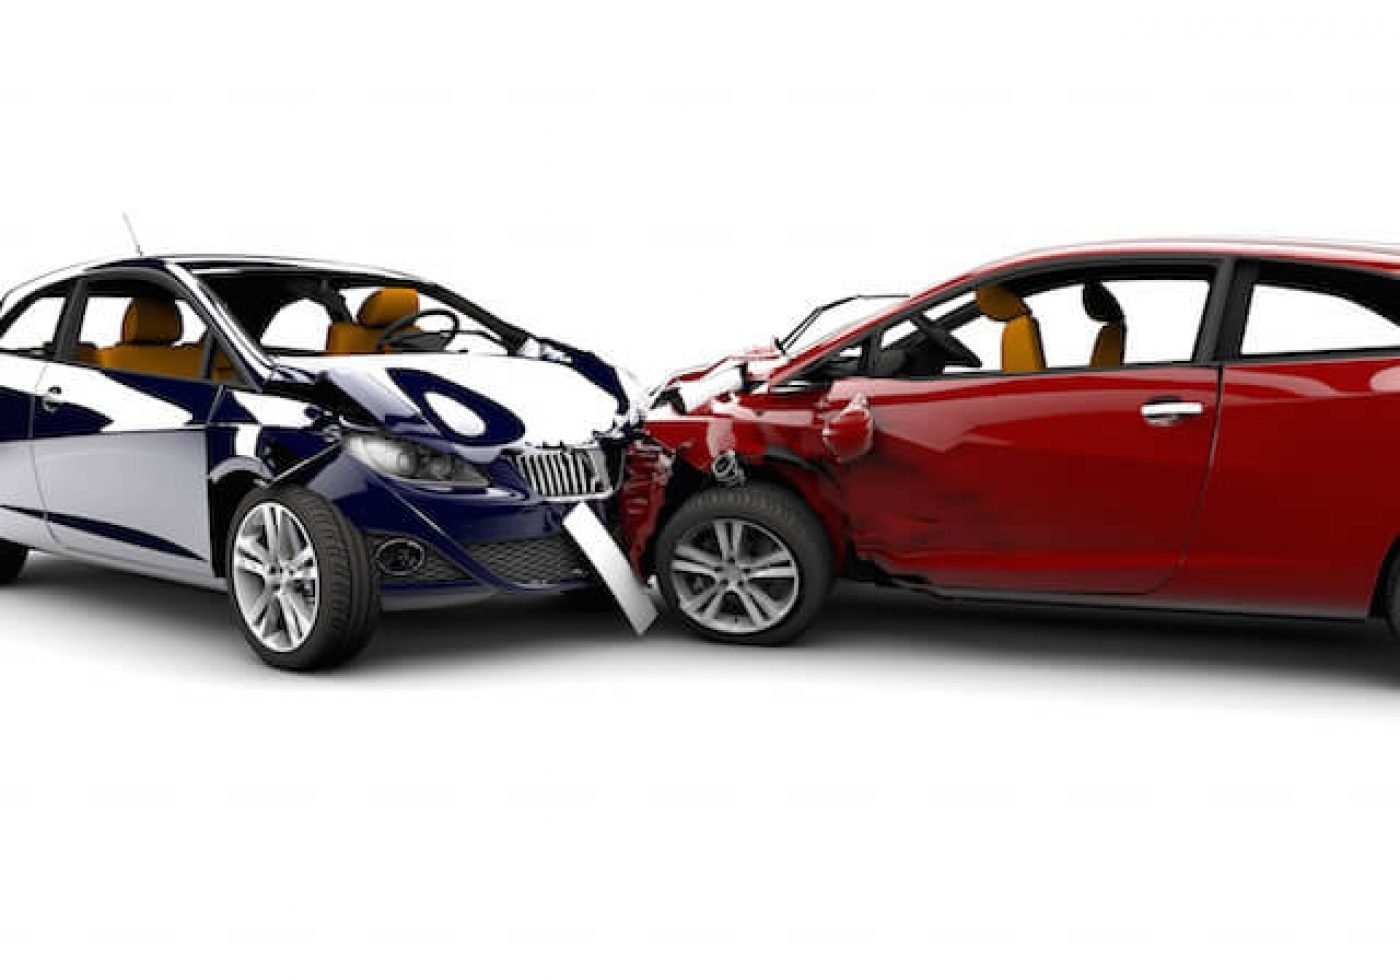 Glendale car accident law firm